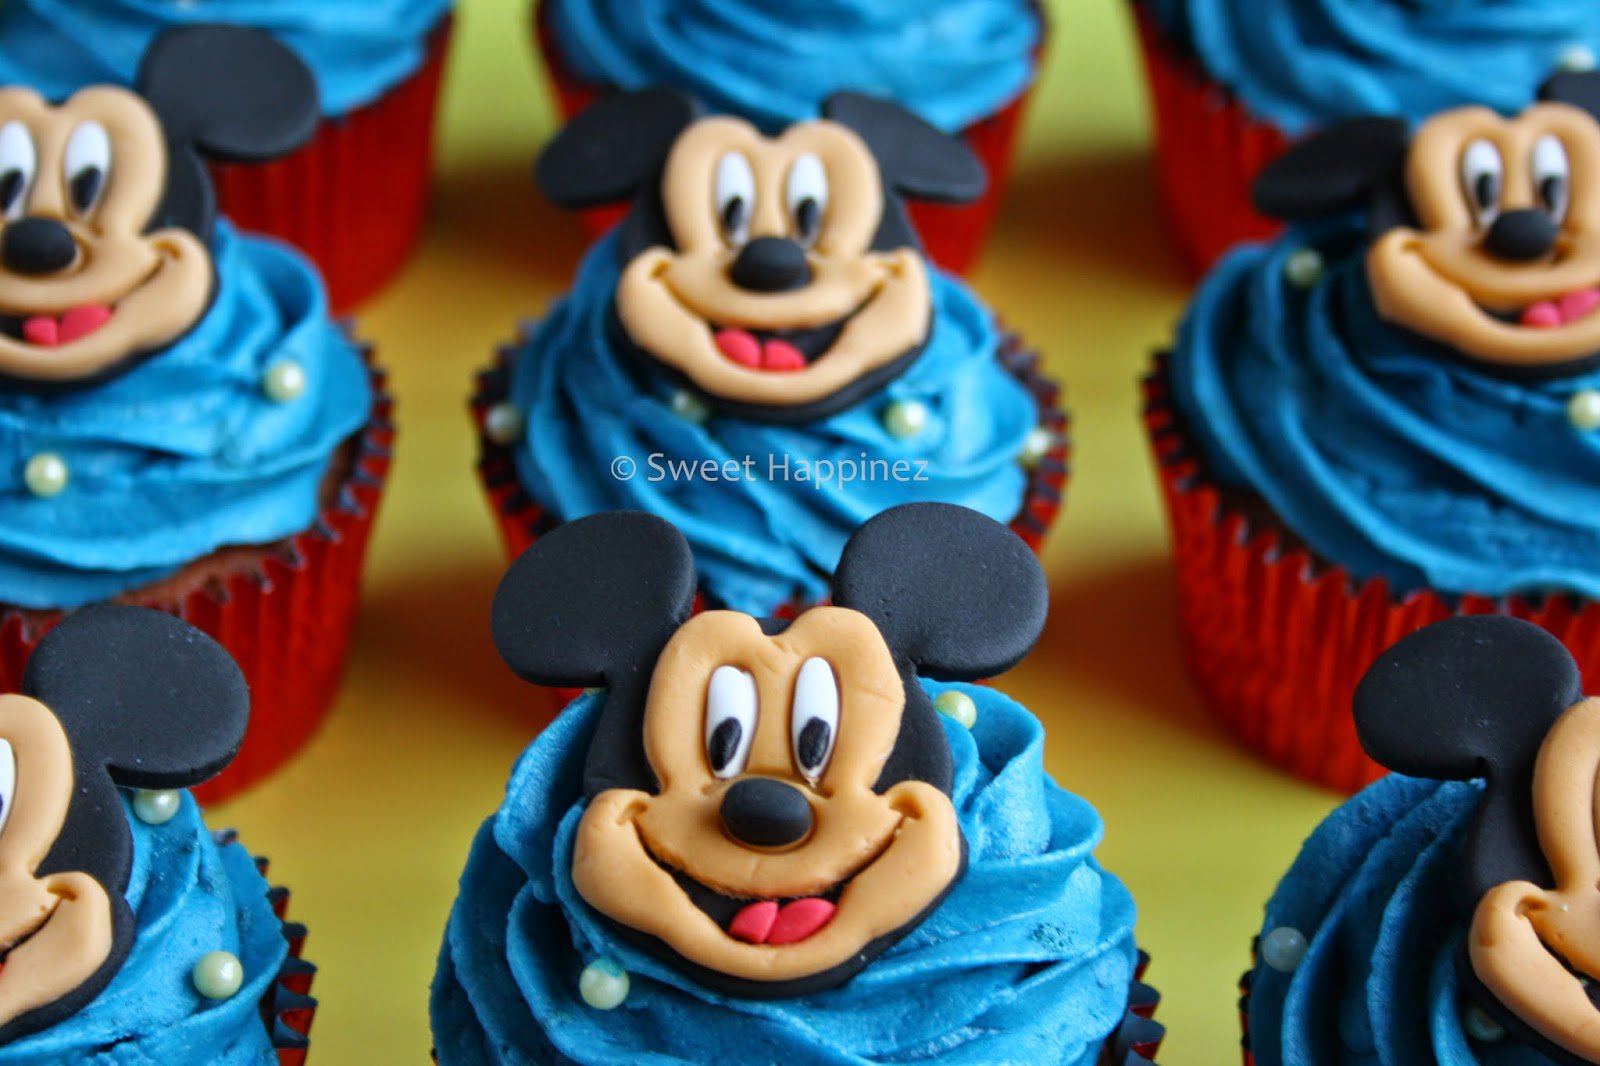 Category Mickey Mouse